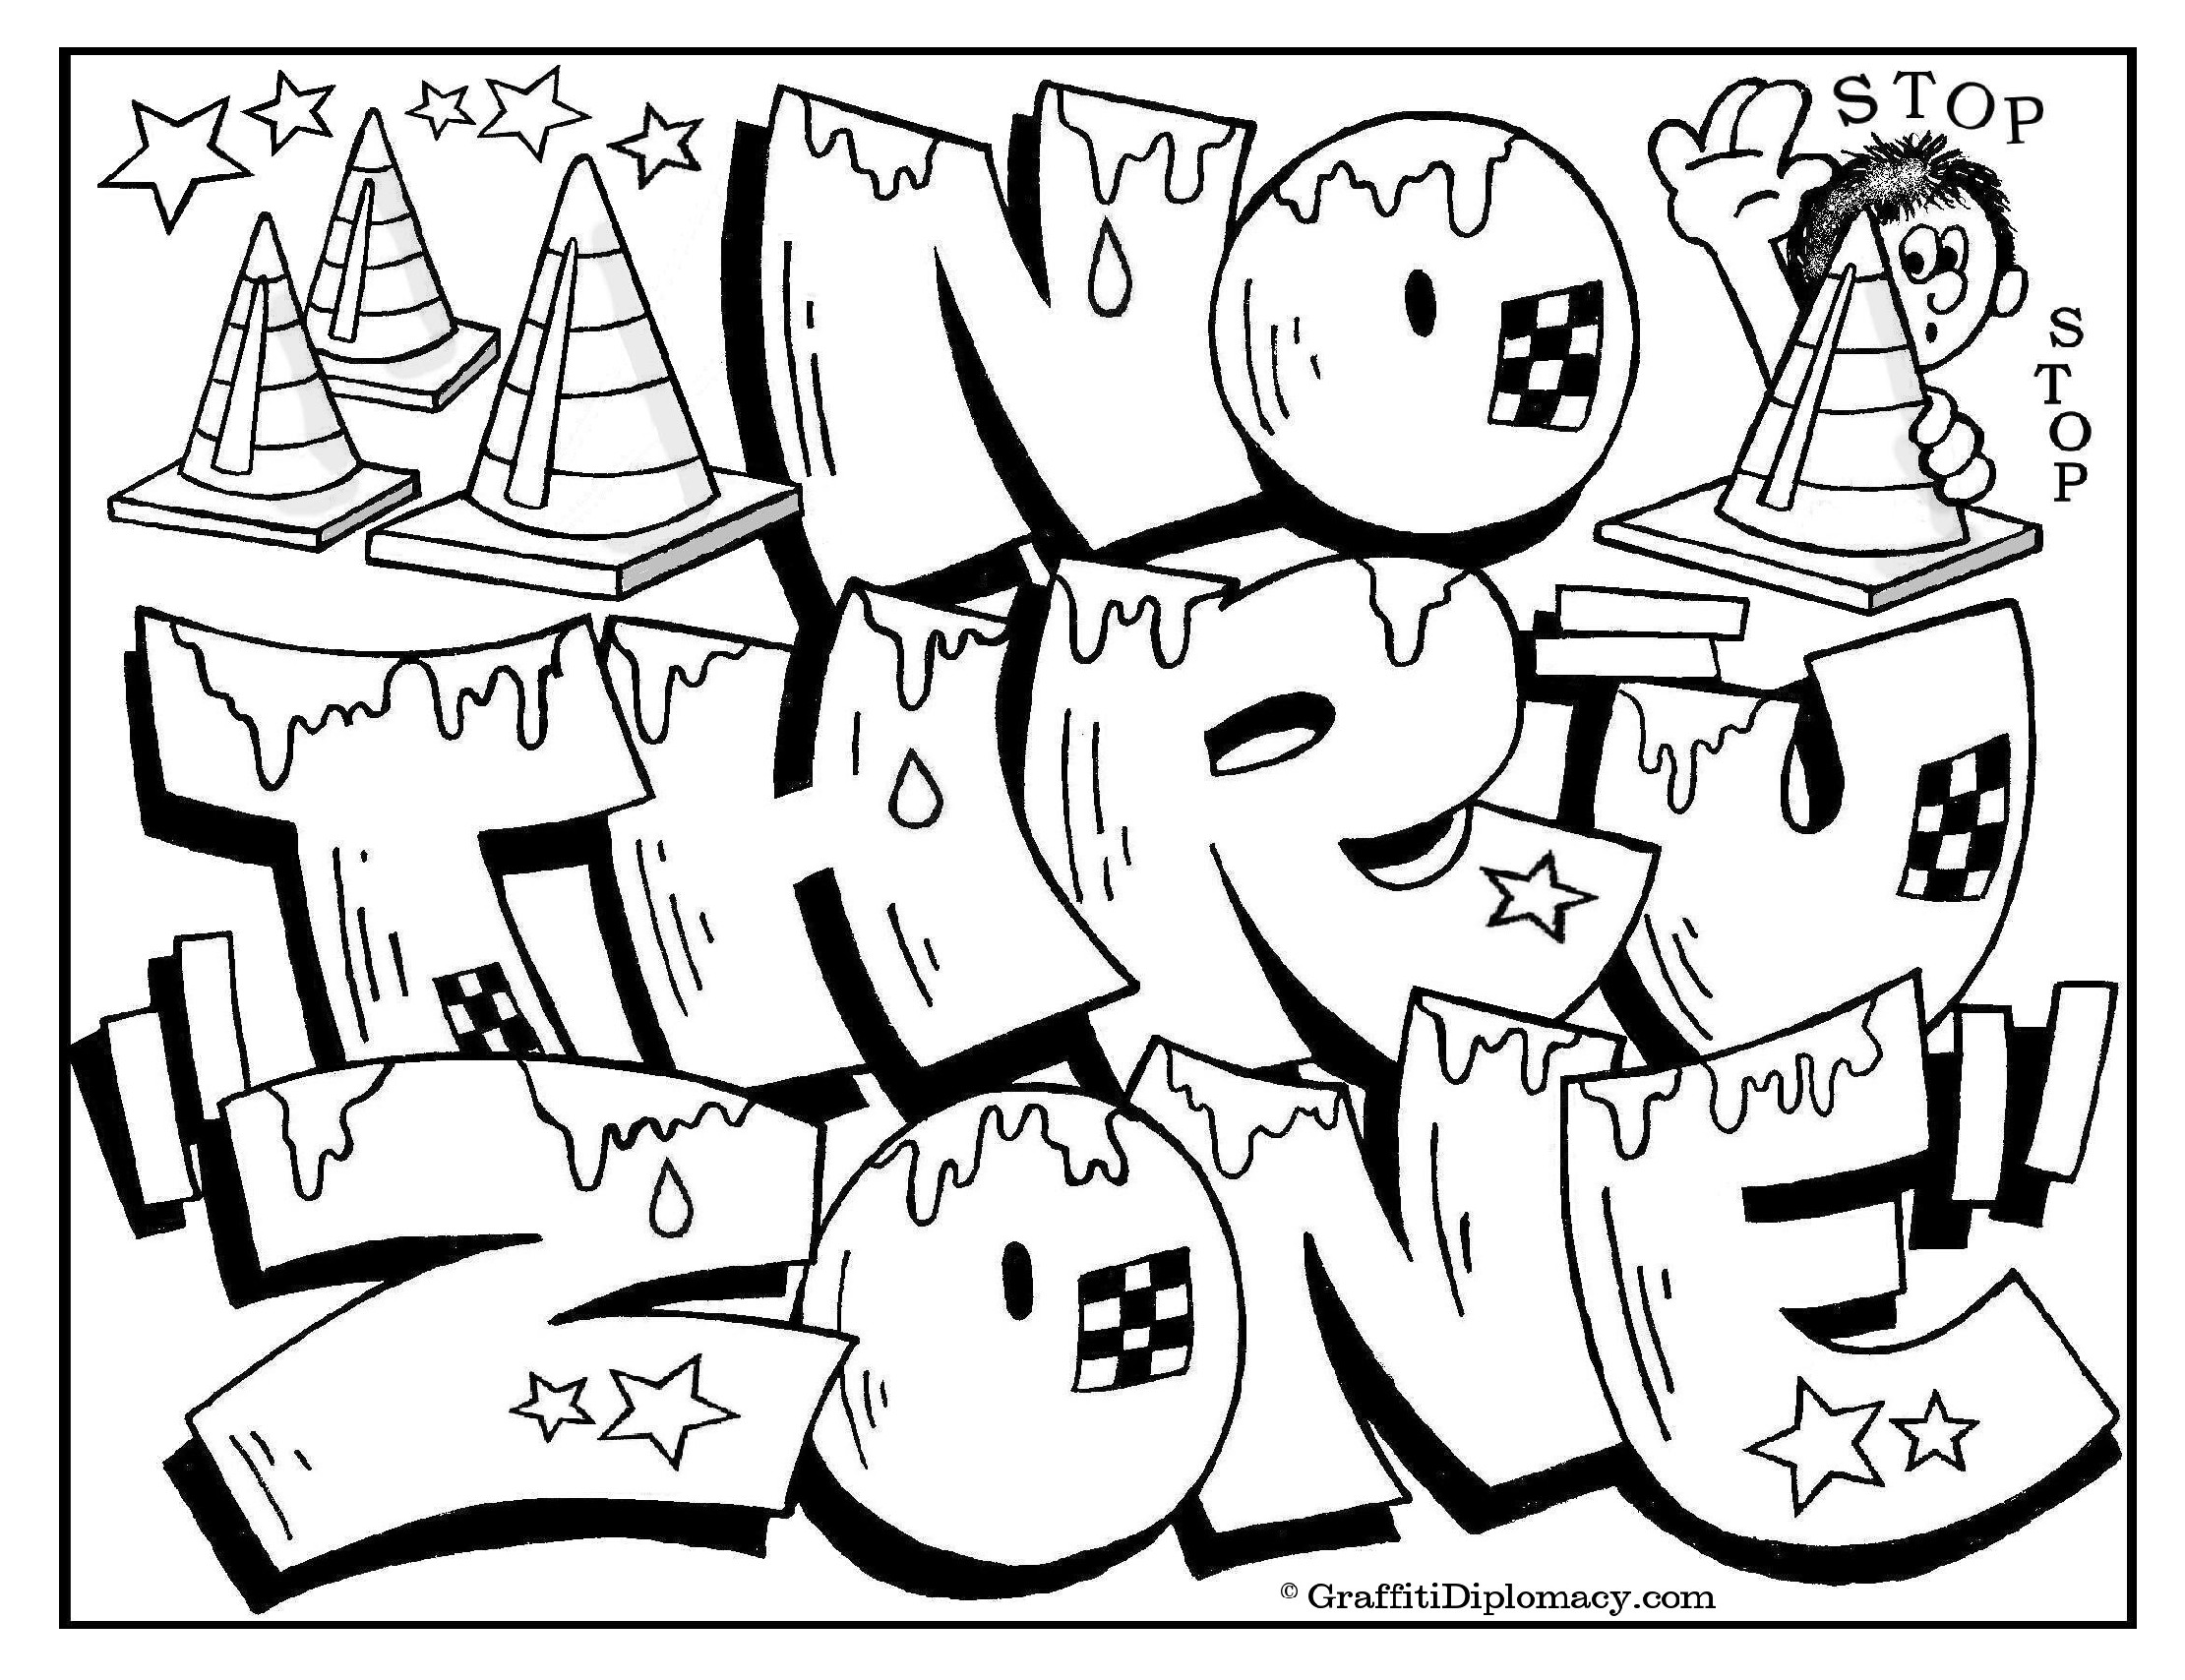 2221x1708 Graffiti Coloring Book Because Y39s A Crooked Letter By